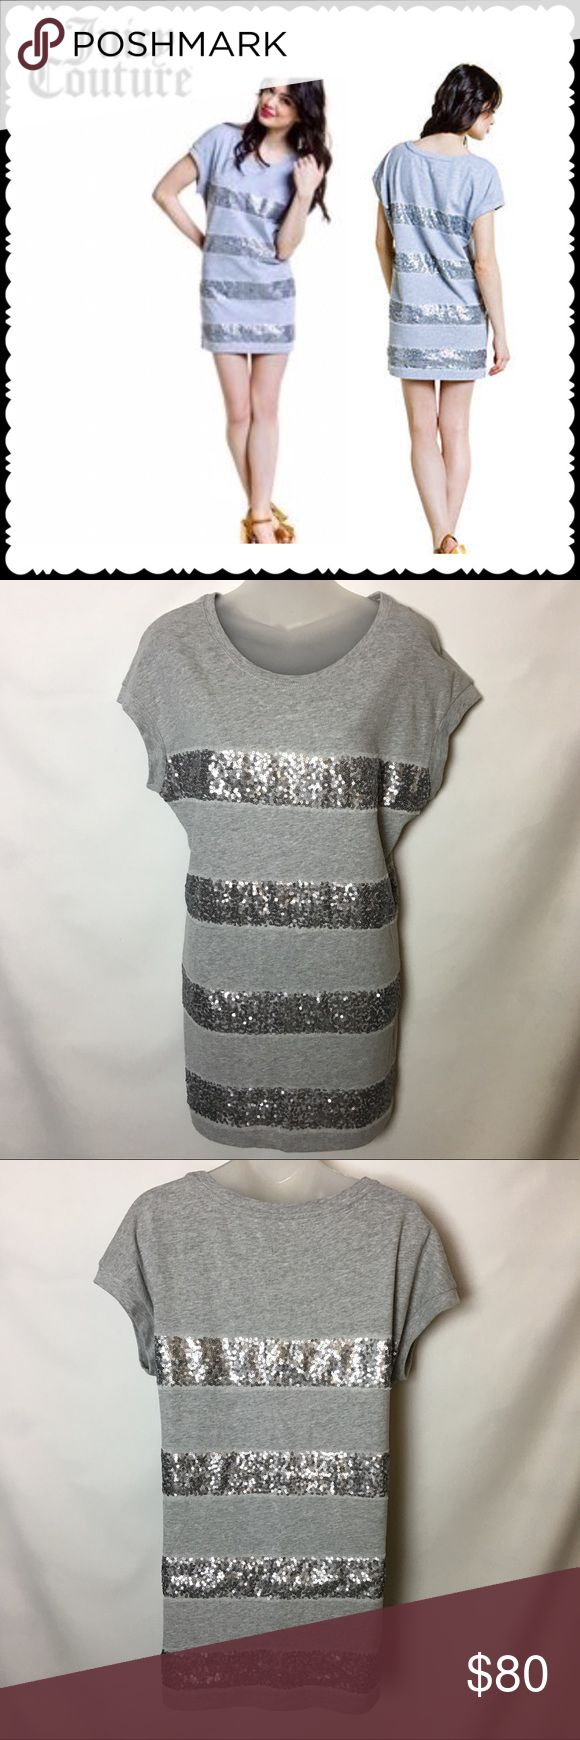 Juicy Couture heather cozy stripped Sequined dress Super cute stripped heather cozy dress Size small MSRP $178! Juicy Couture Dresses Mini